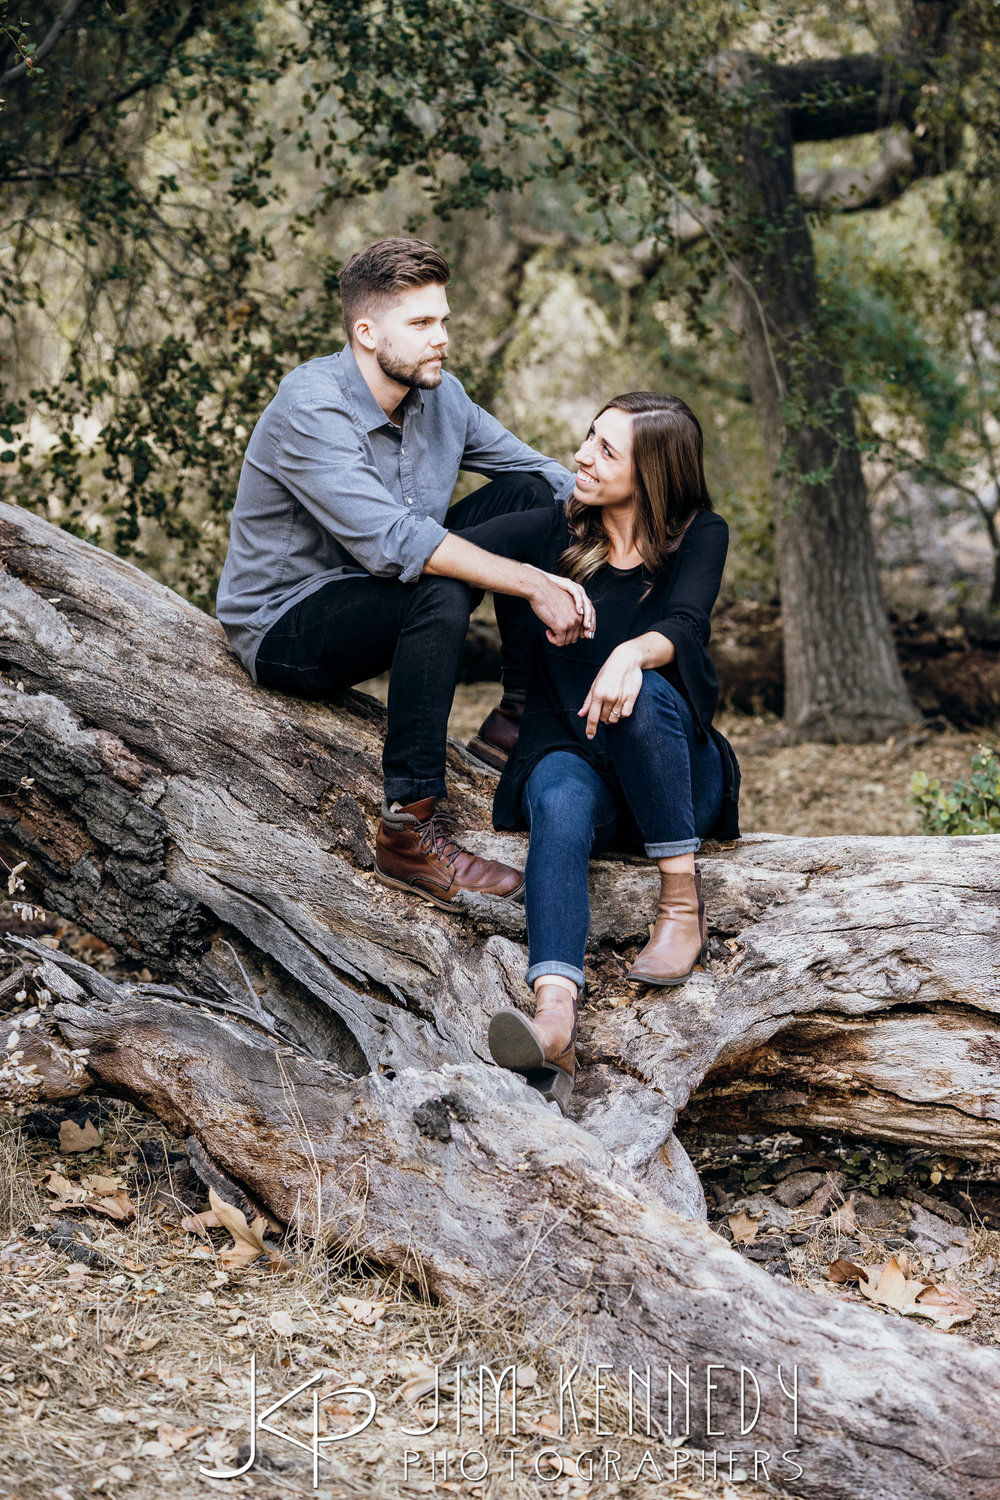 thomas-f-riley-wilderness-park-engagement-session-Leah-tyler_0019.JPG